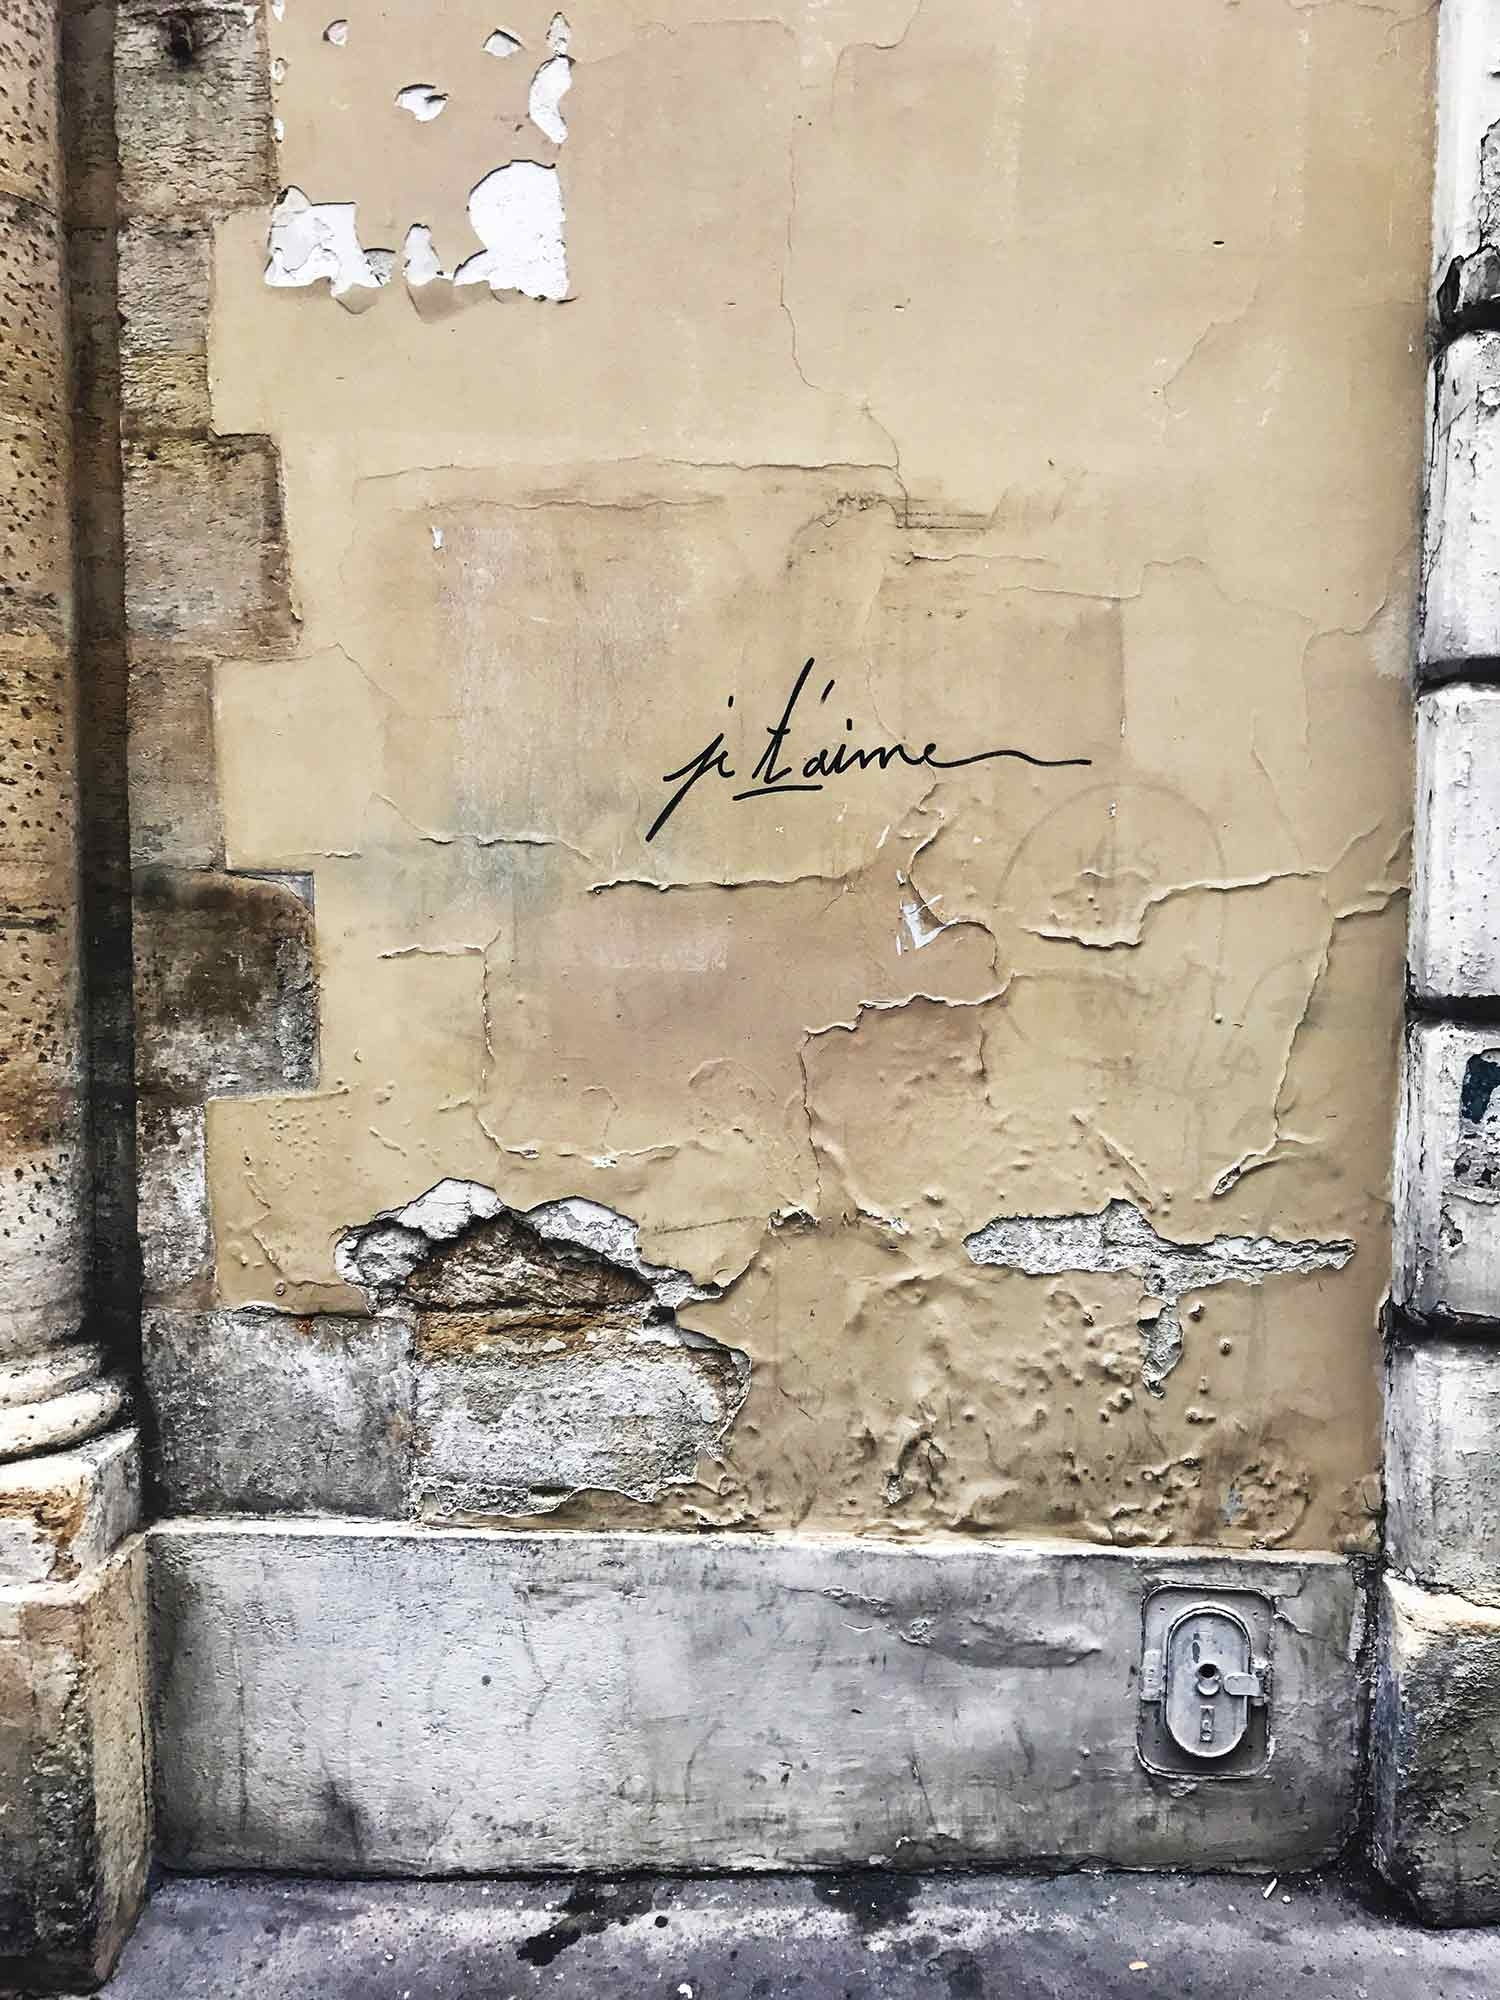 """Je t'aime"" written on a wall on the street. December 2018"